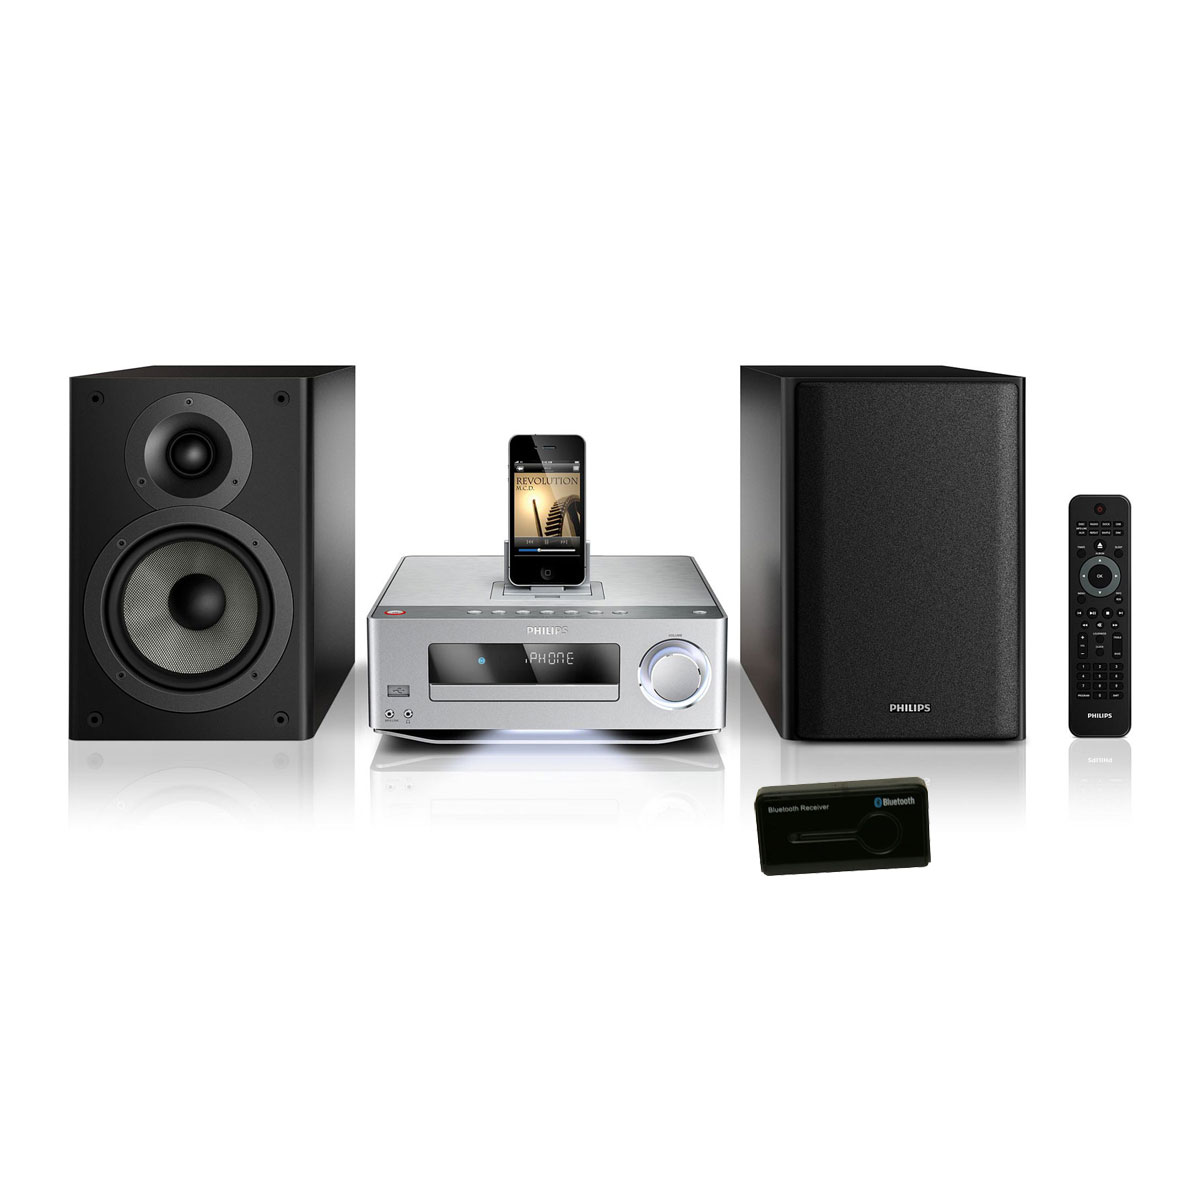 philips dcm7005 neo sound r cepteur bluetooth cha ne hifi philips sur ldlc. Black Bedroom Furniture Sets. Home Design Ideas